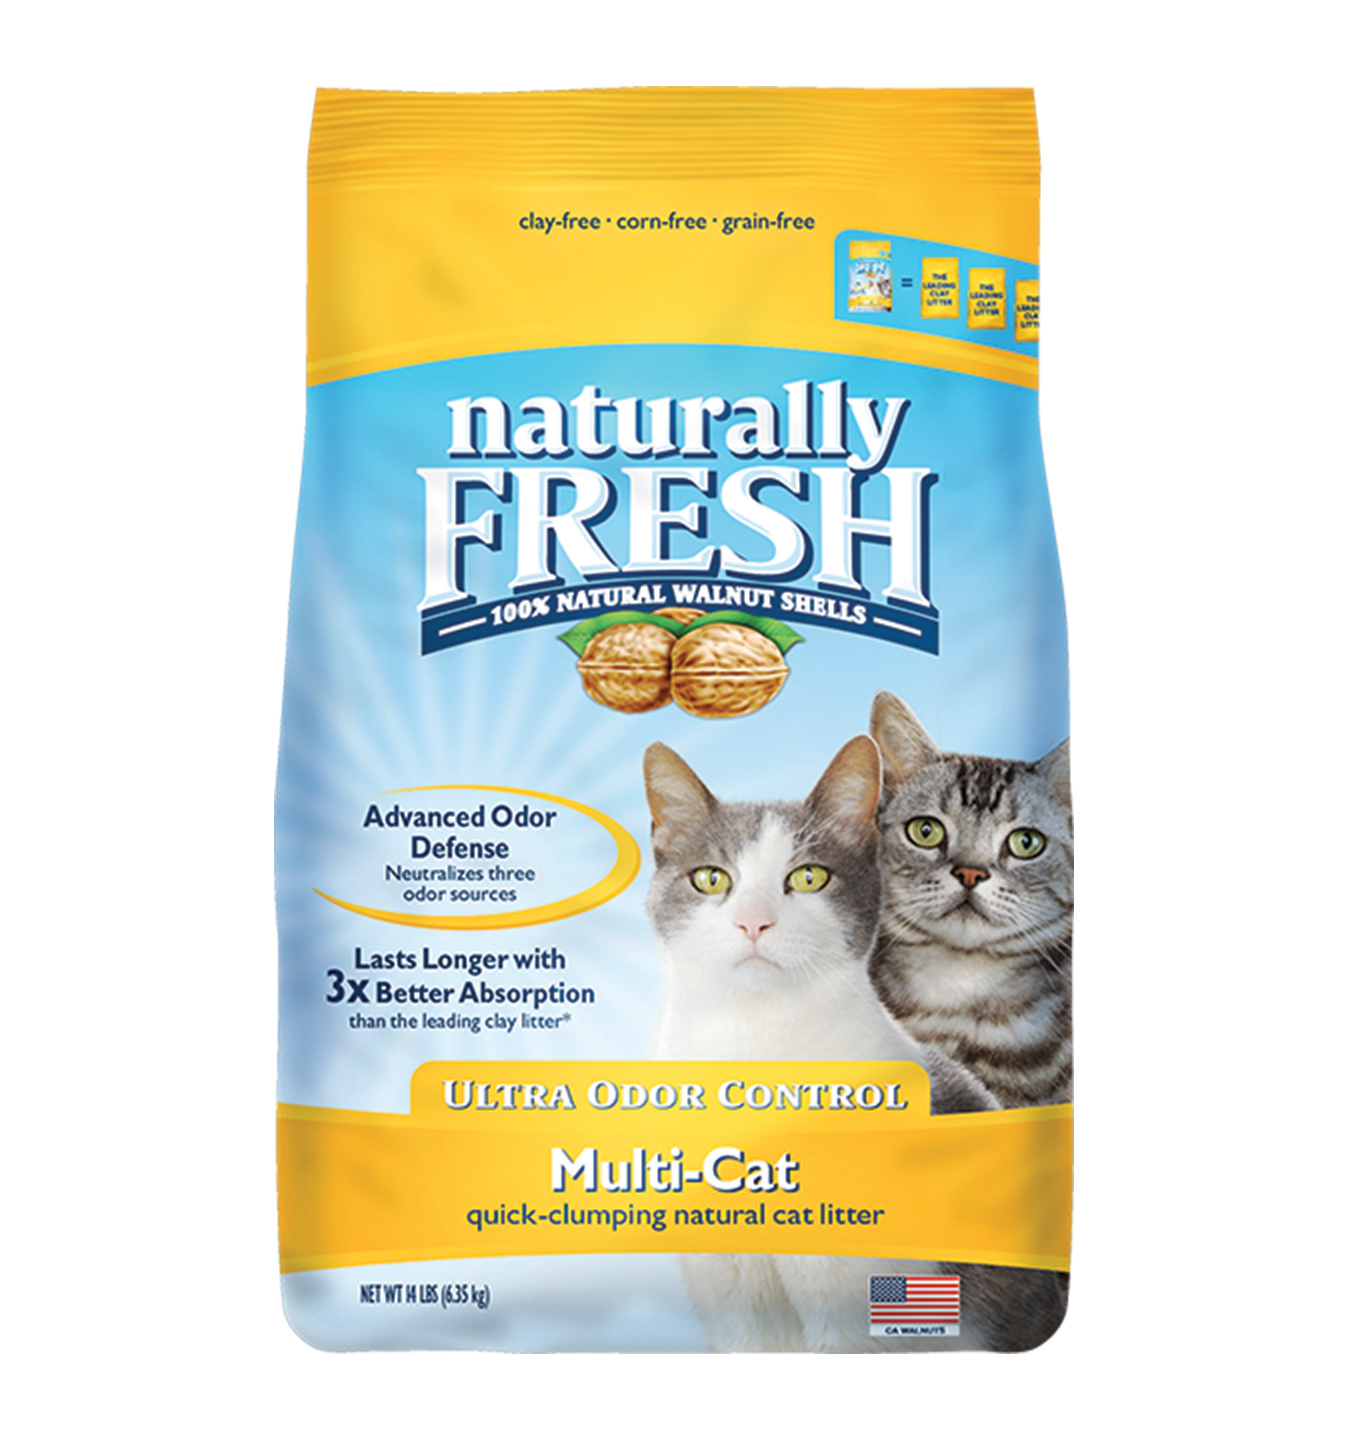 Naturally Fresh Walnut-Based Multi-Cat Ultra Odor Control Quick-Clumping Cat Litter, 14-lb bag